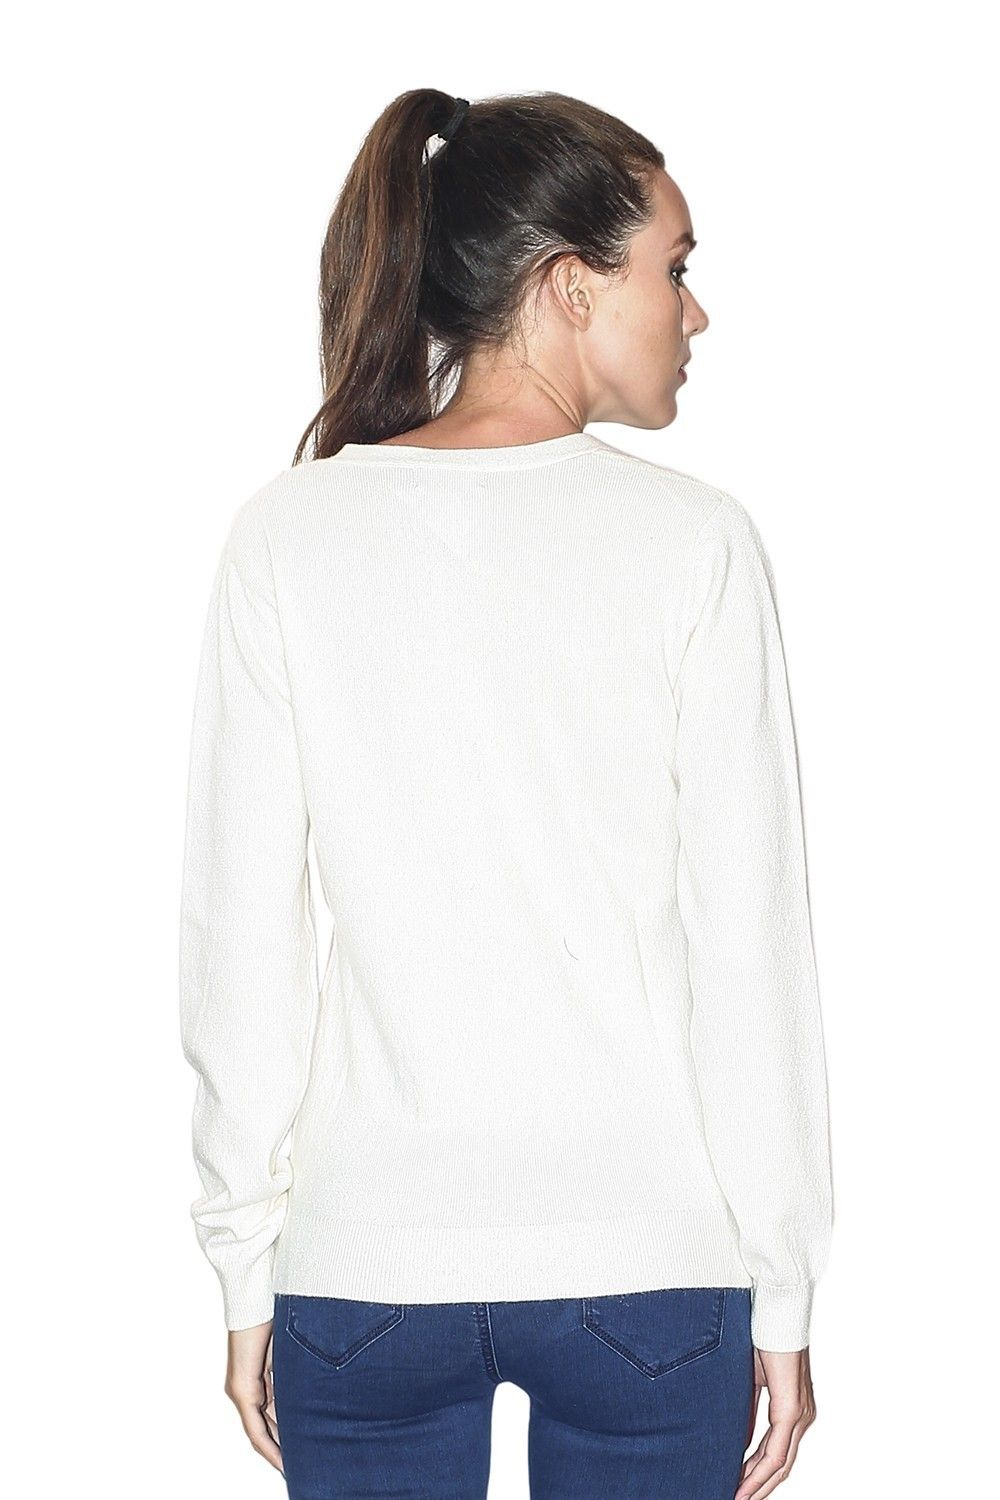 C&JO V-neck Button Detail Sweater in Natural